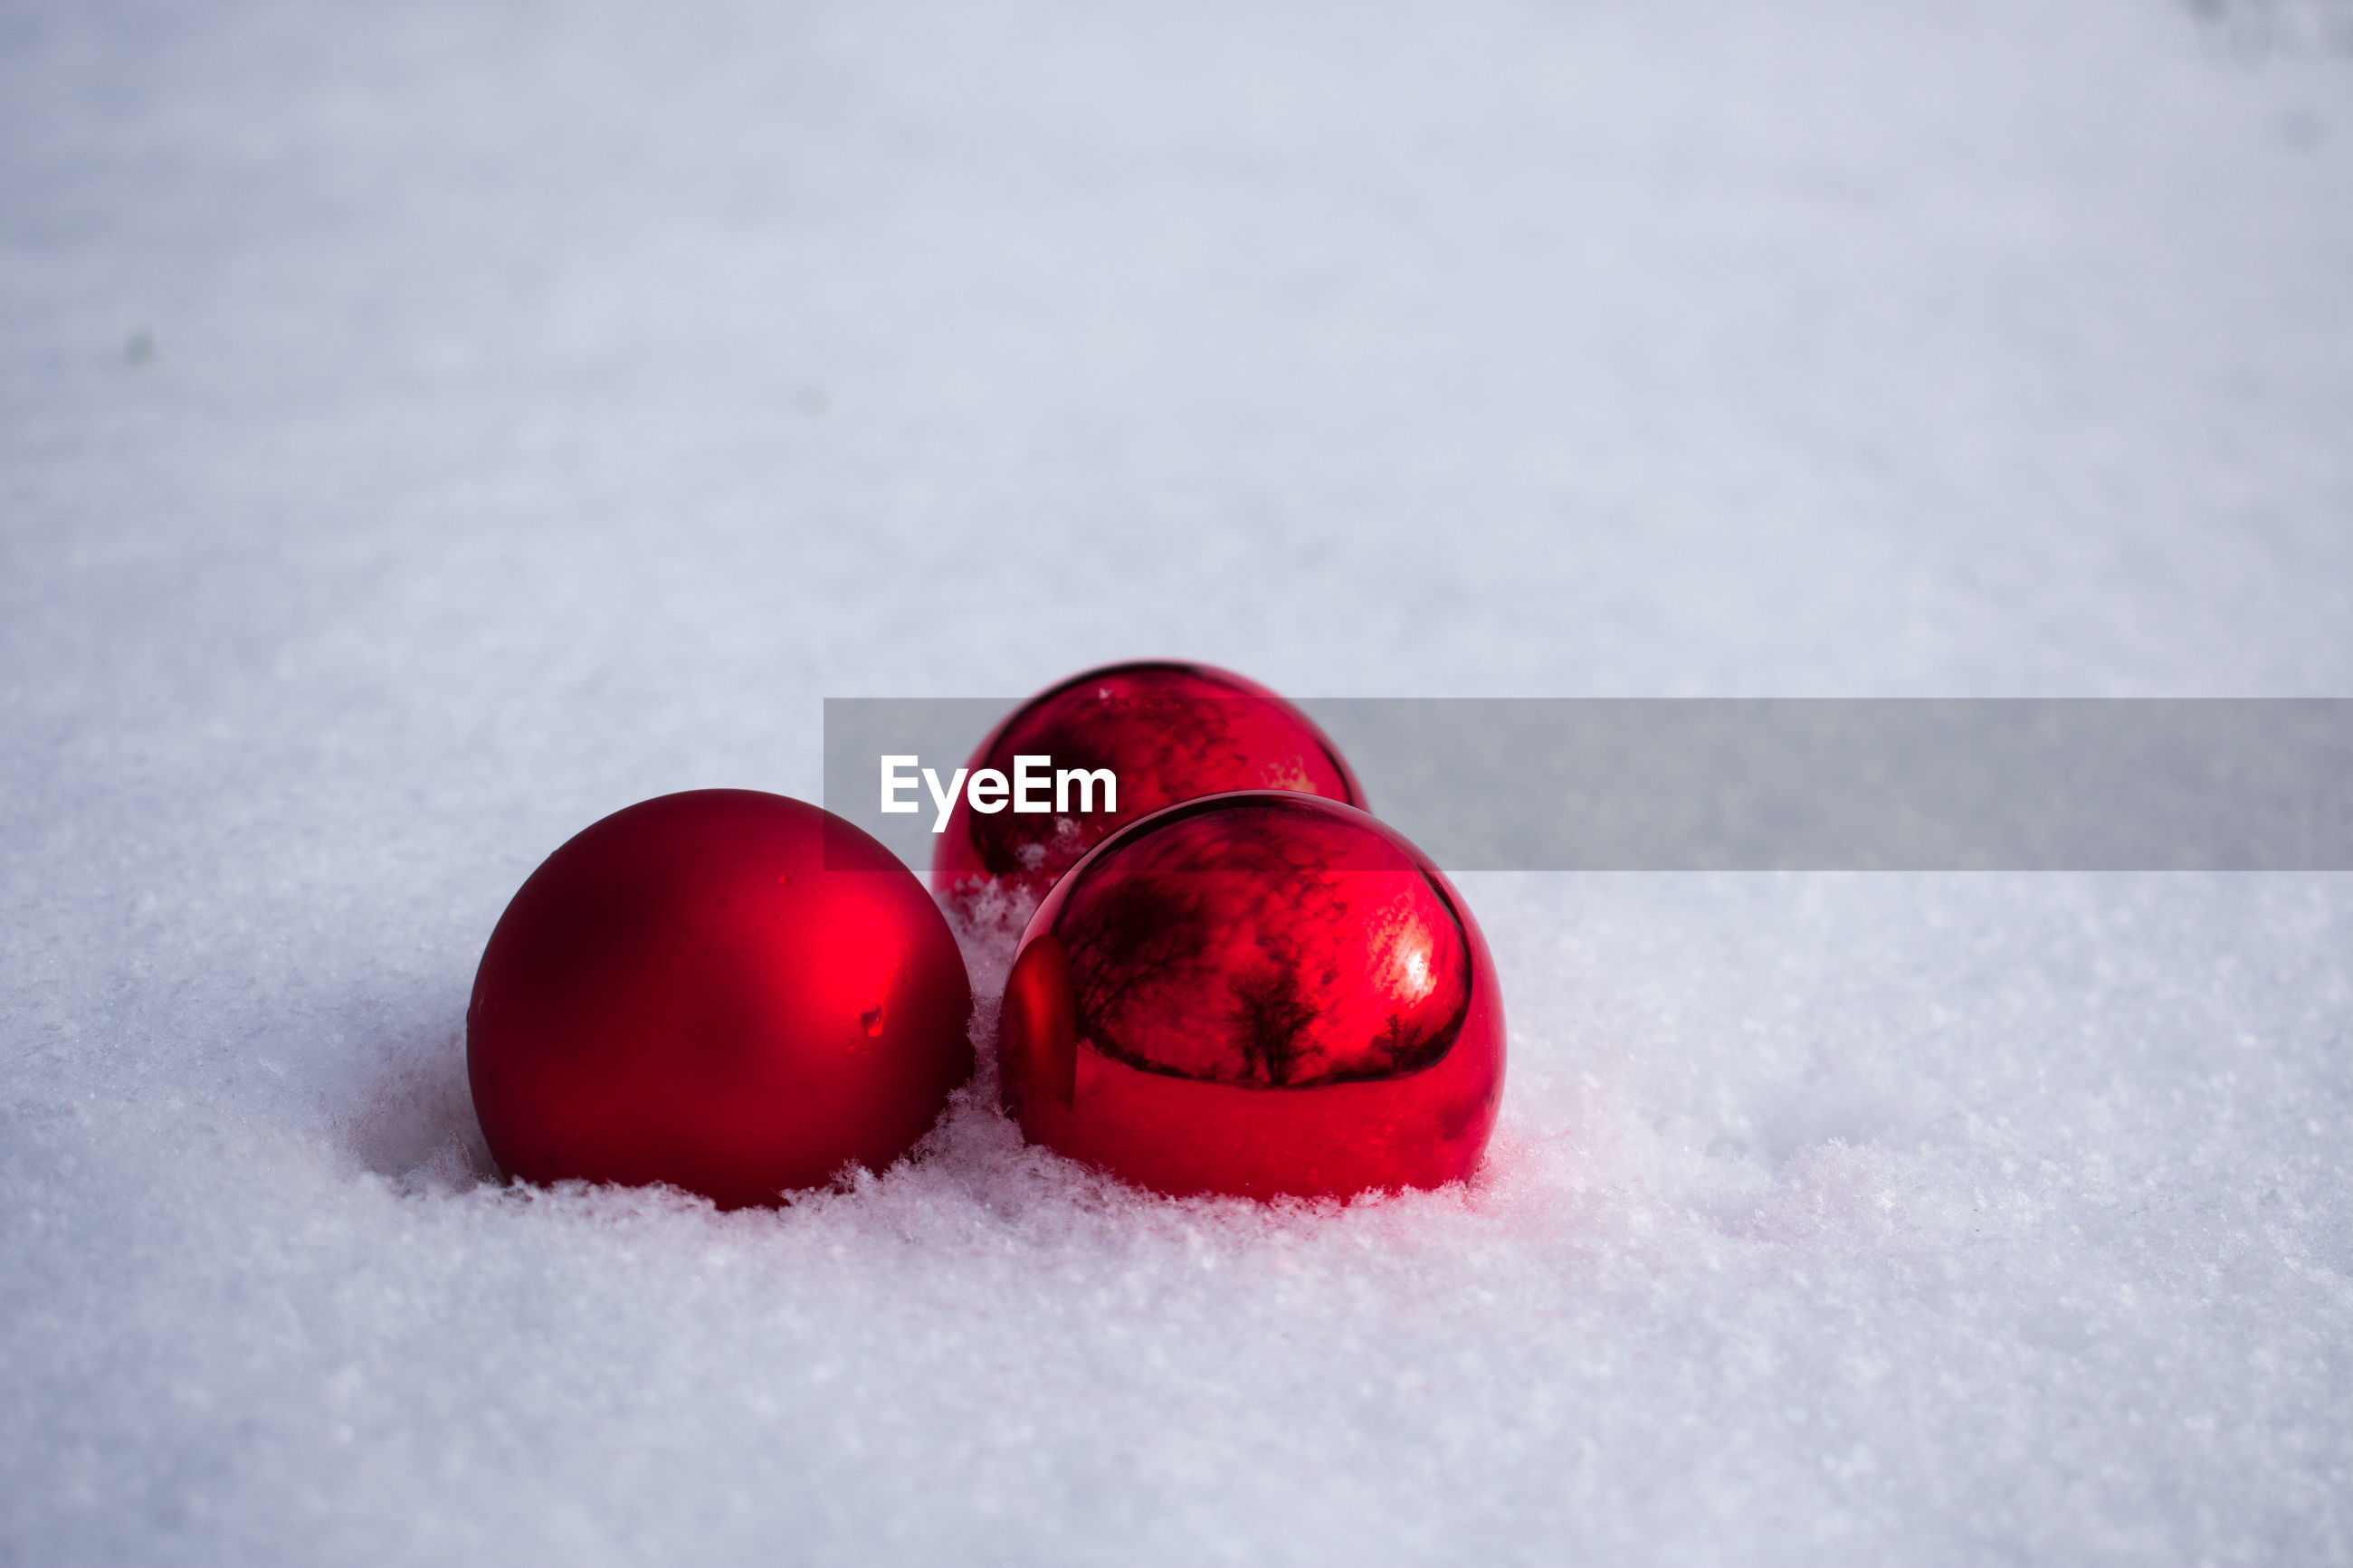 cold temperature, snow, red, winter, nature, white color, close-up, no people, frozen, food, food and drink, healthy eating, field, fruit, covering, land, day, selective focus, freshness, powder snow